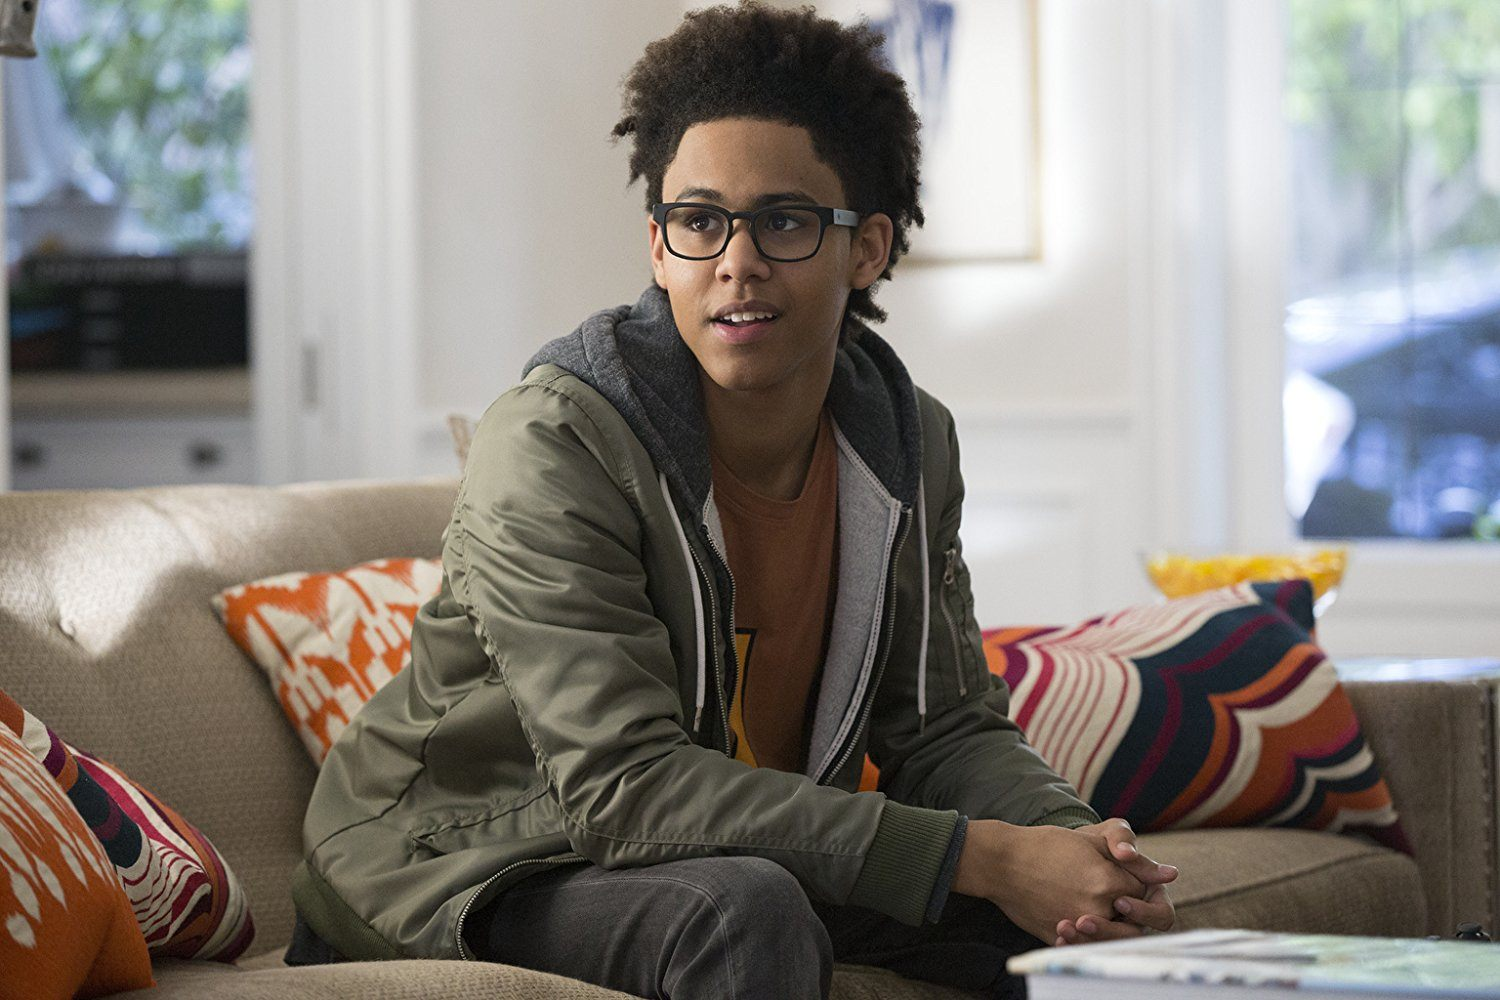 Rhenzy Feliz as Alex Wilder in Marvel's Runaways